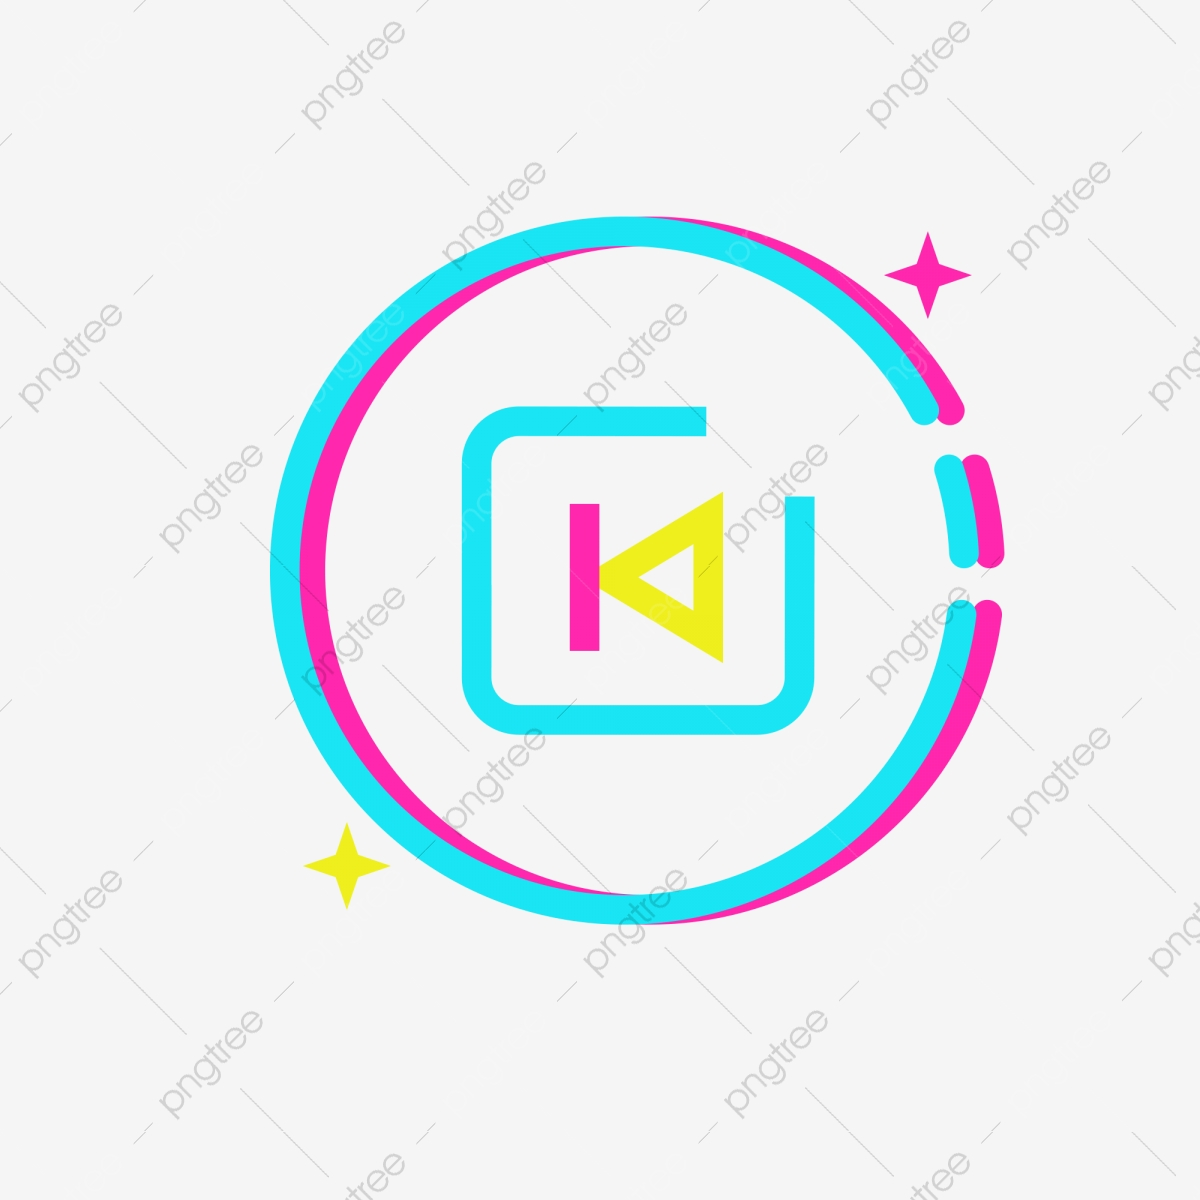 Cartoon Music Play Icon Download Player Video Player Video Icon Png Transparent Clipart Image And Psd File For Free Download